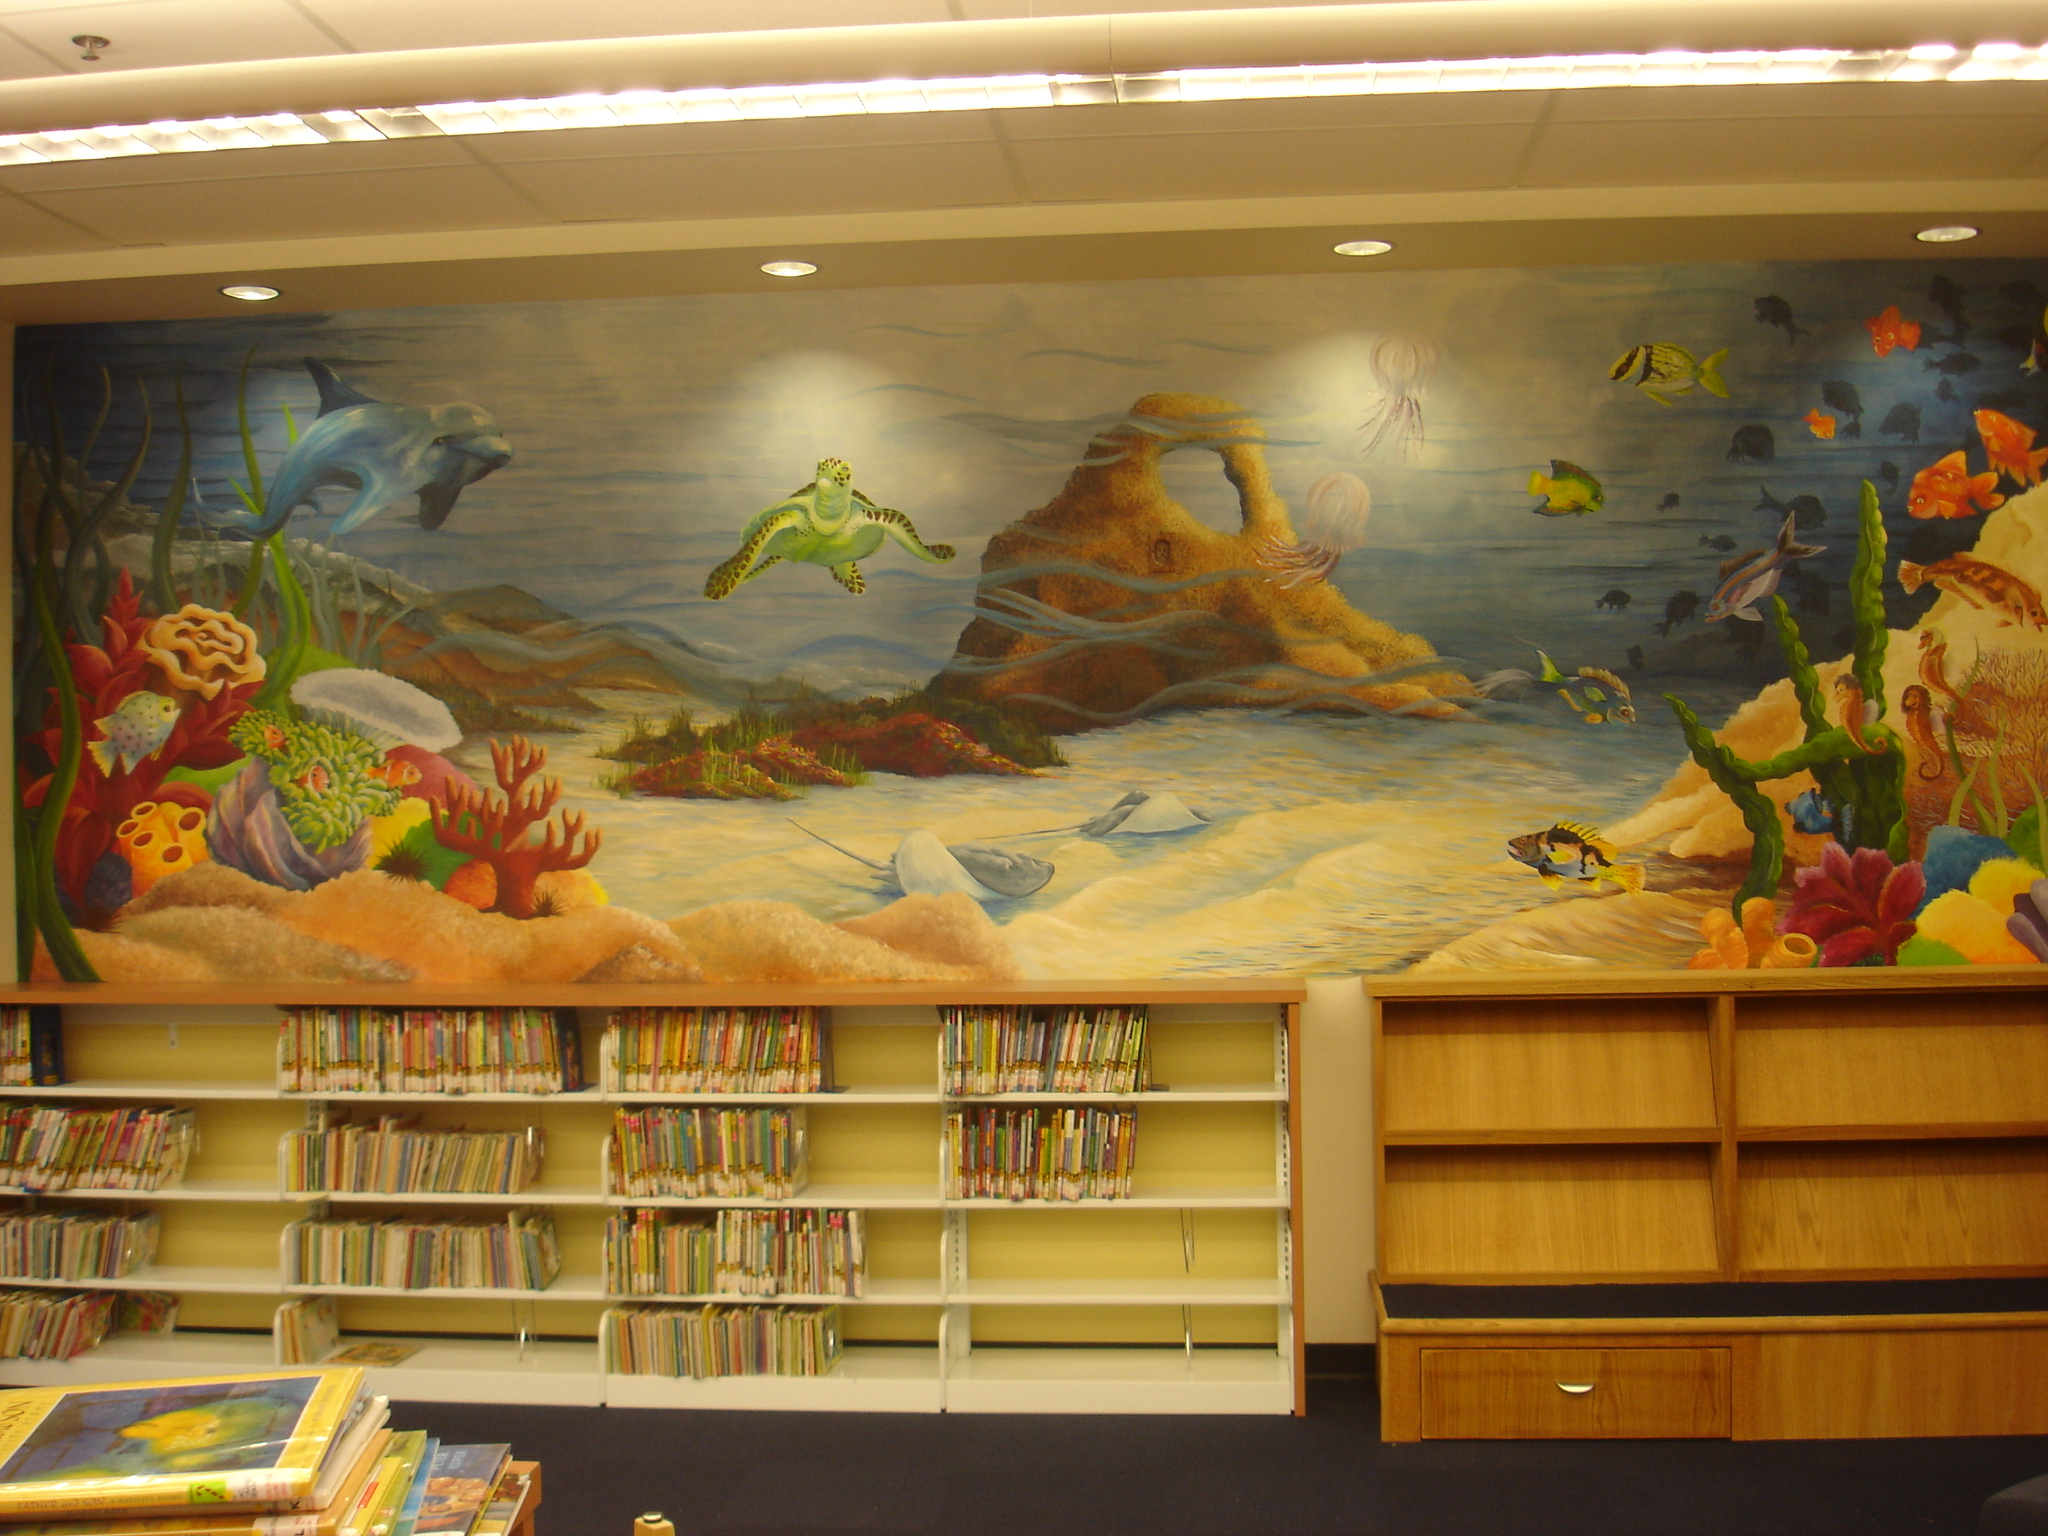 Mural in Children's section of library